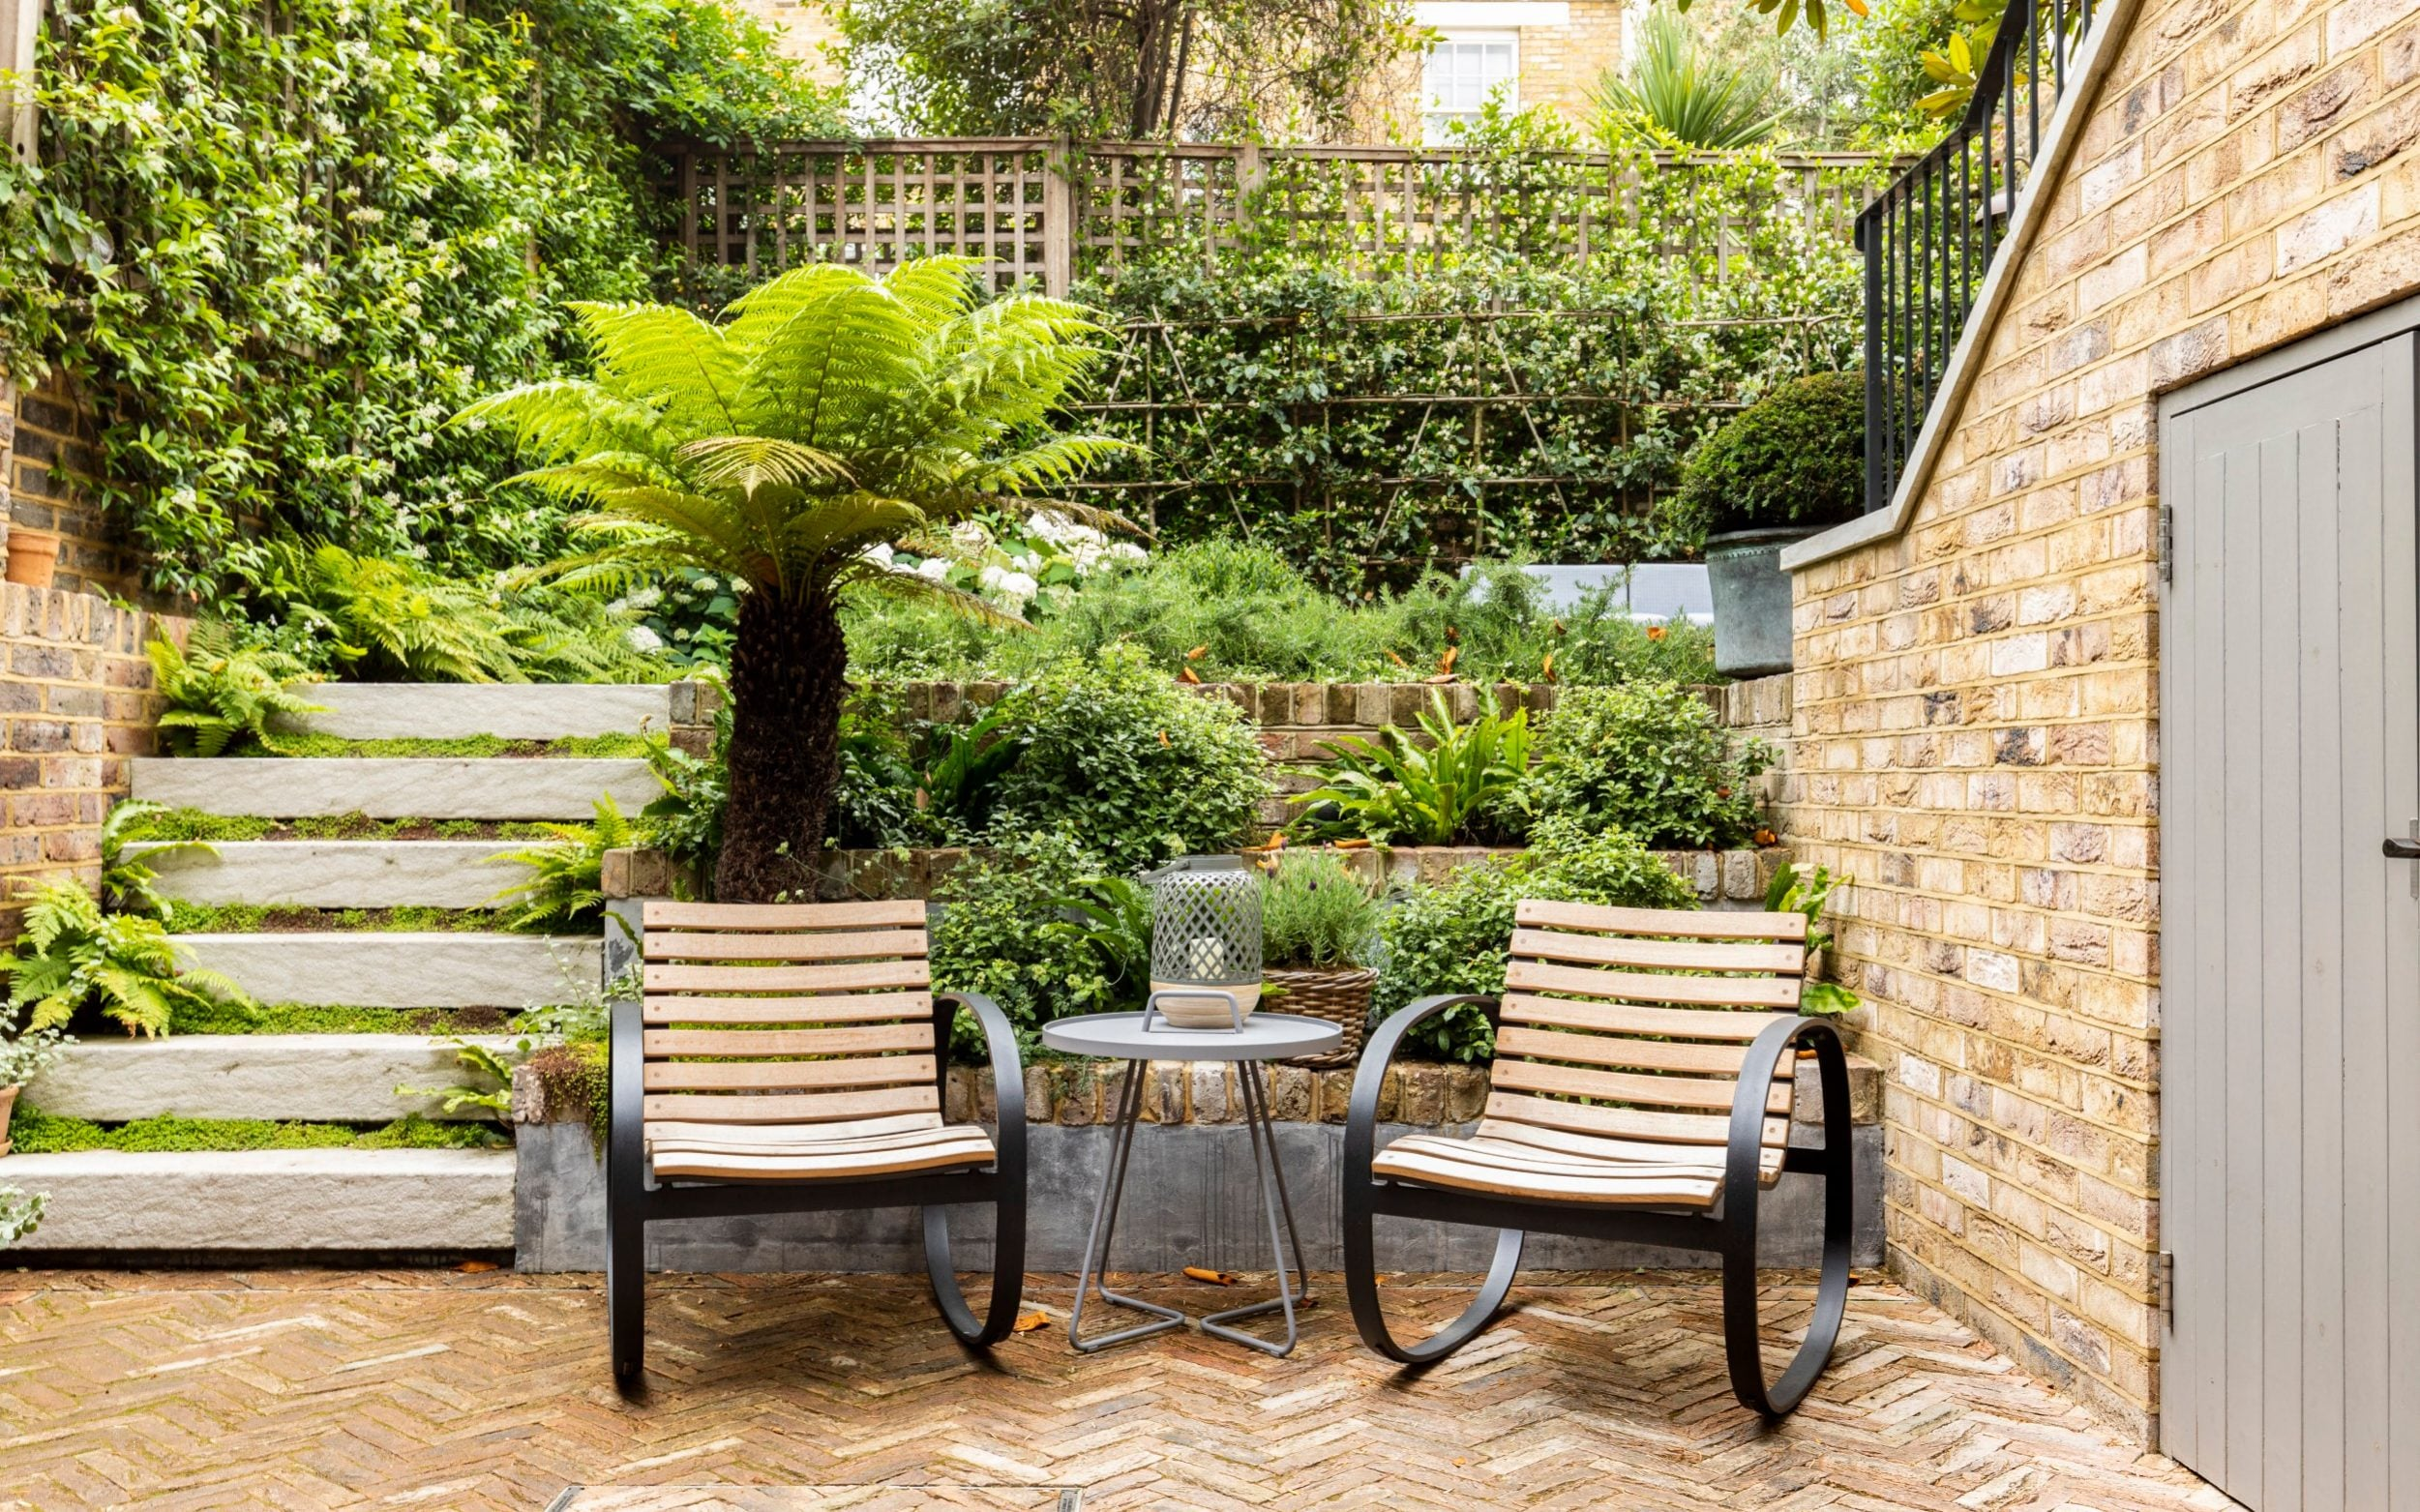 How To Turn Your Yarden Into An Elegant Courtyard Space The Telegraph